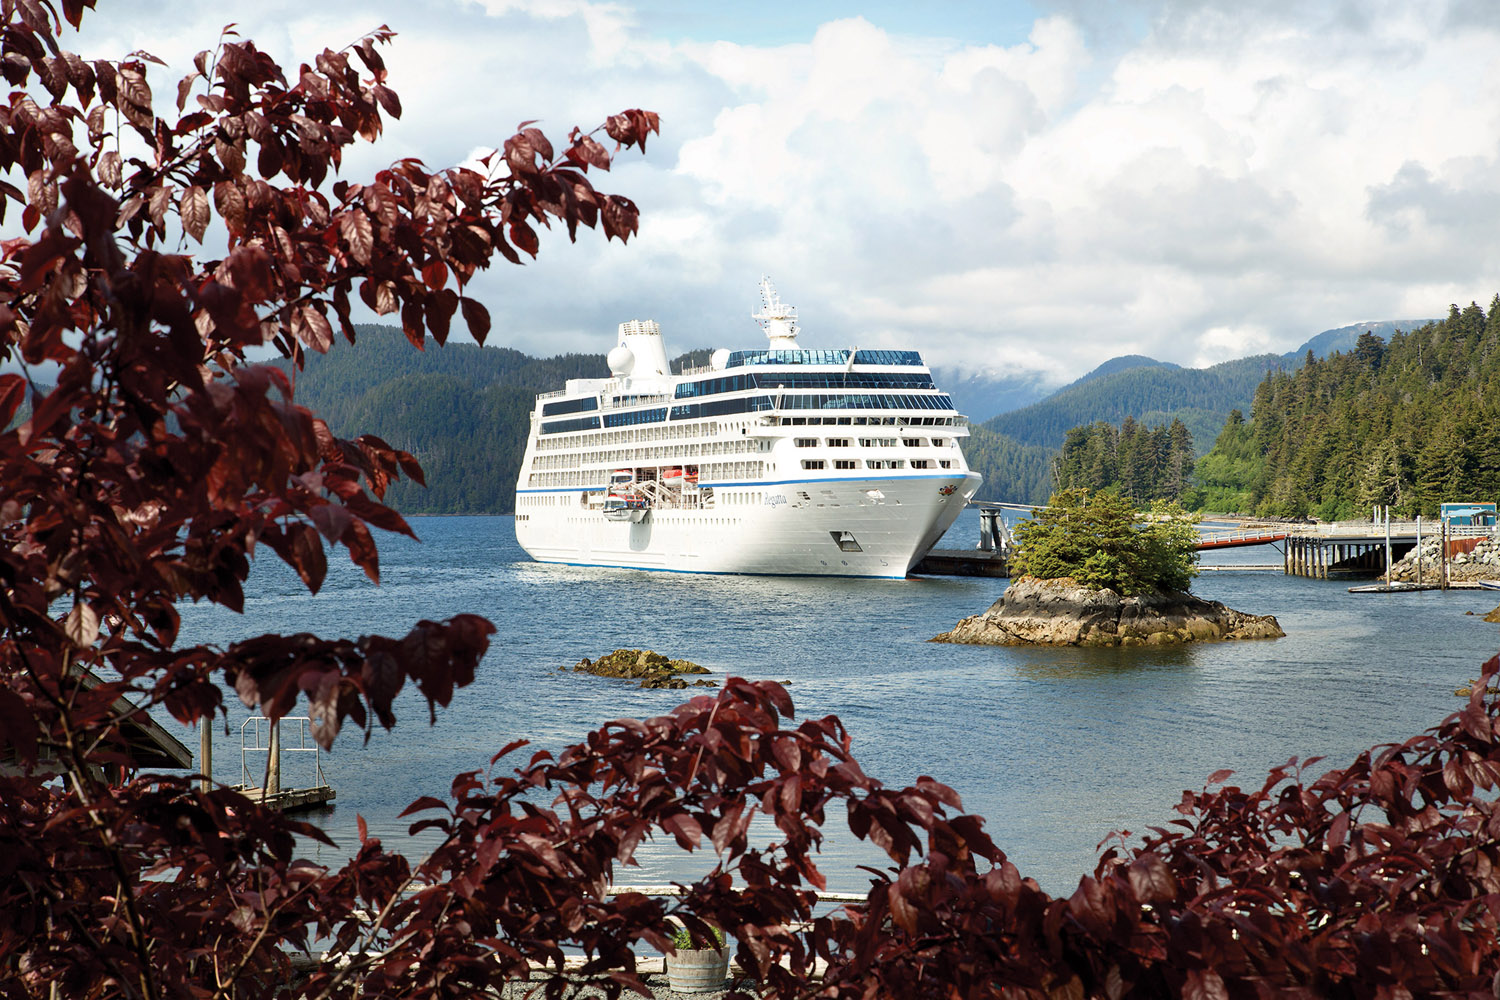 Oceania Cruises is offering a wave of savingson all 2017-2018 sailings.